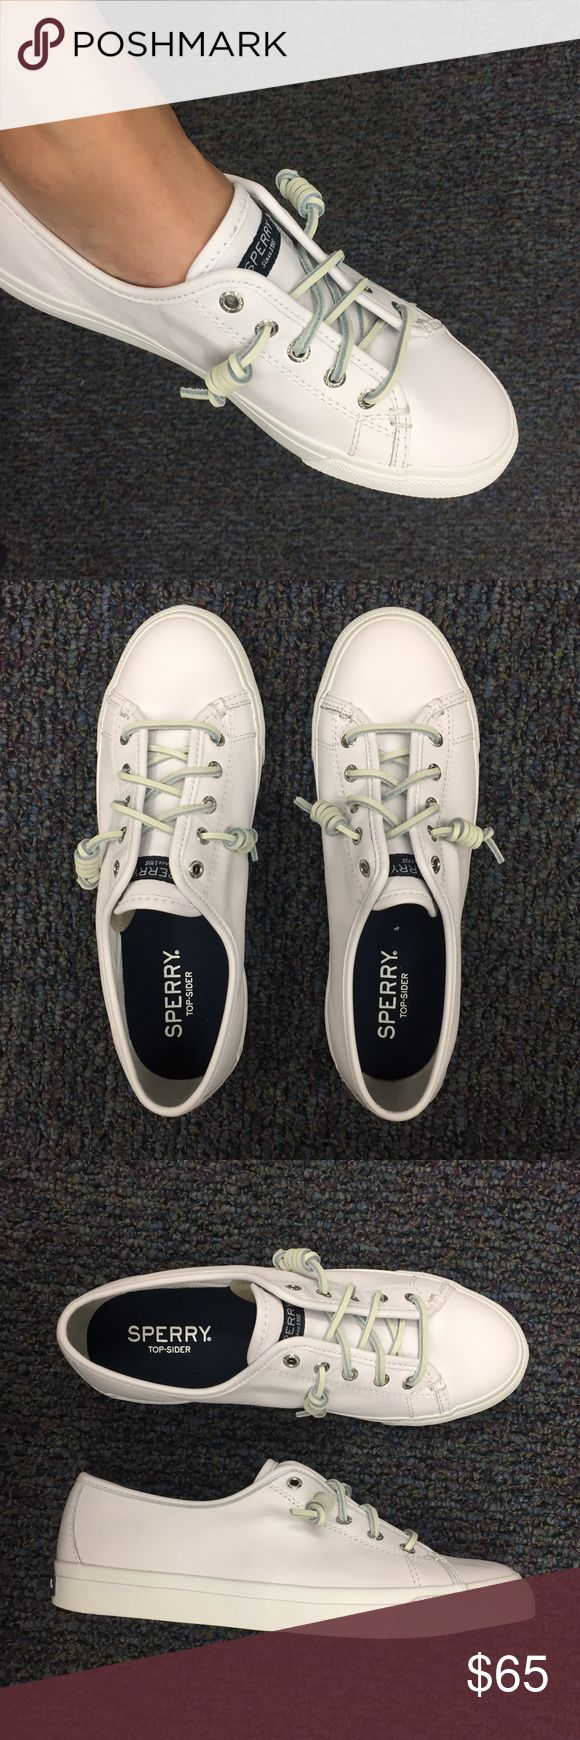 ☀️NWT ☀️ Sperry Boat Shoes ⛵️☀️ Brand new!! ☀️⛵️ Nail a nautical look in this women's shoe by Sperry. Luxurious leather keeps it completely comfy, and the classic silhouette is always on trend.😎 (no trades) Sperry Shoes